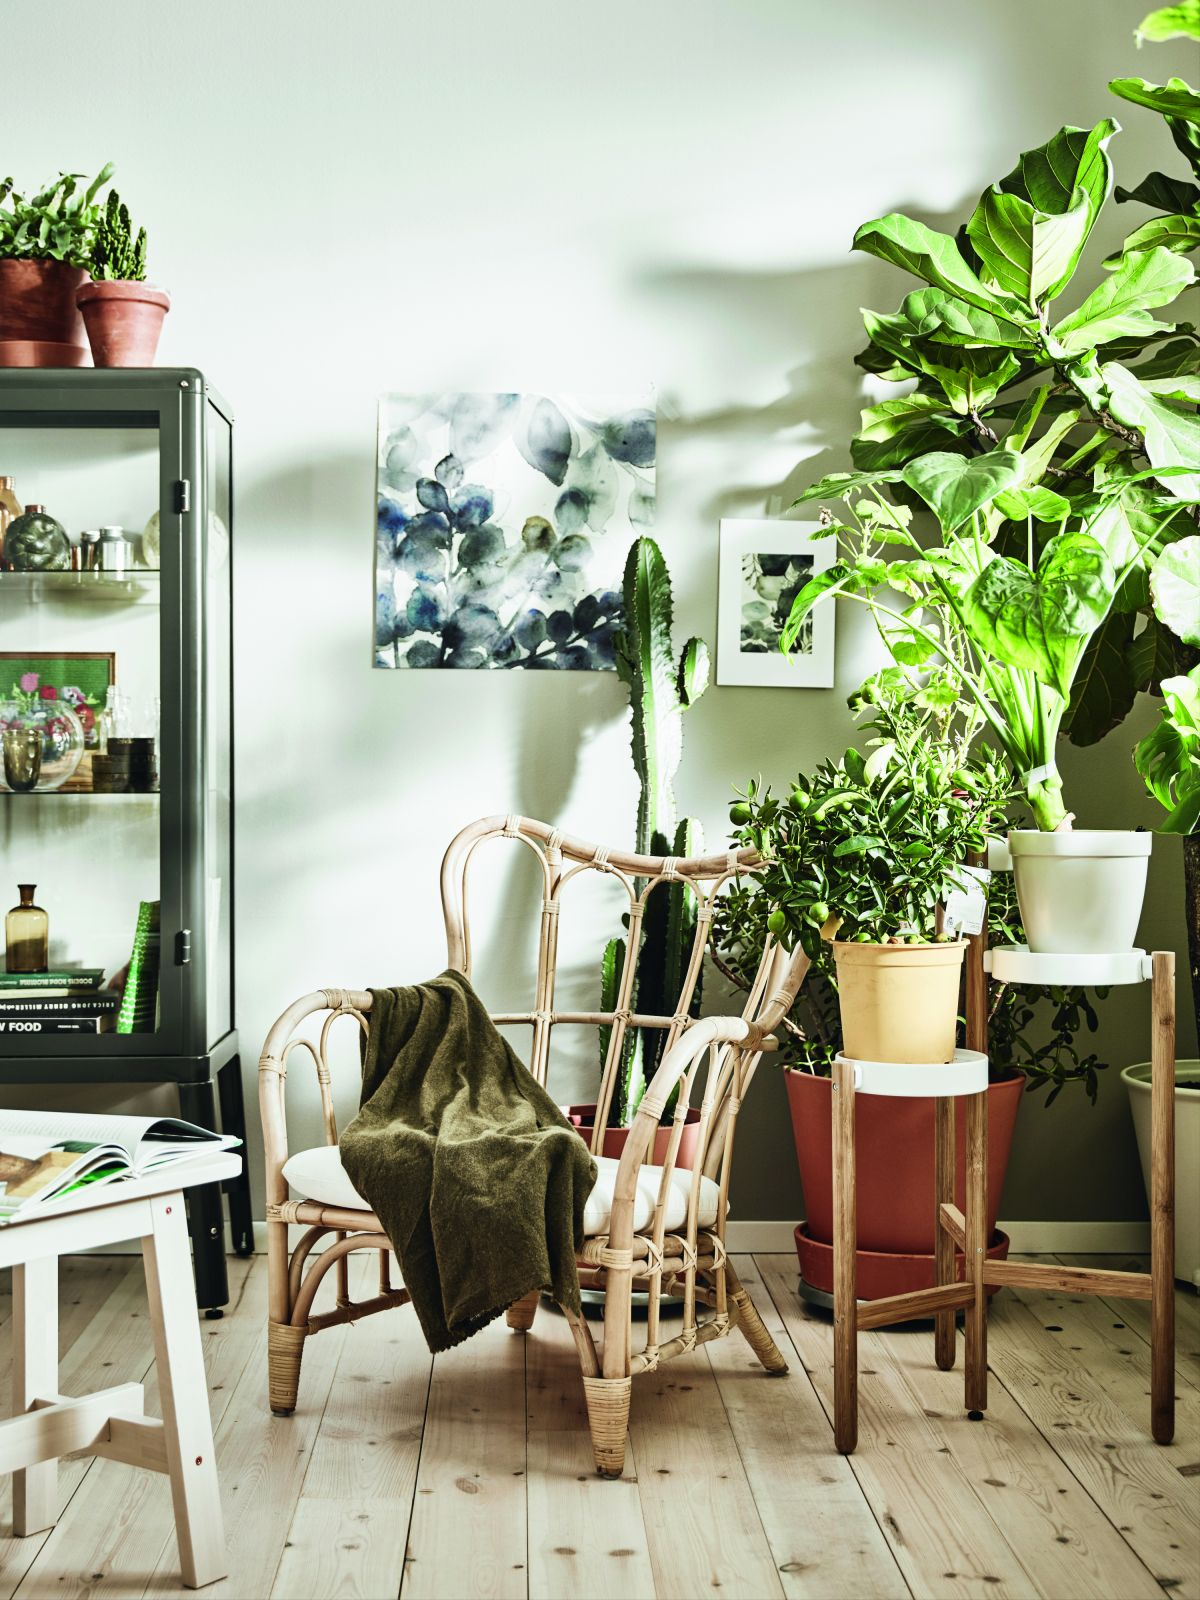 House plants: 19 gorgeous display ideas to brighten up ...